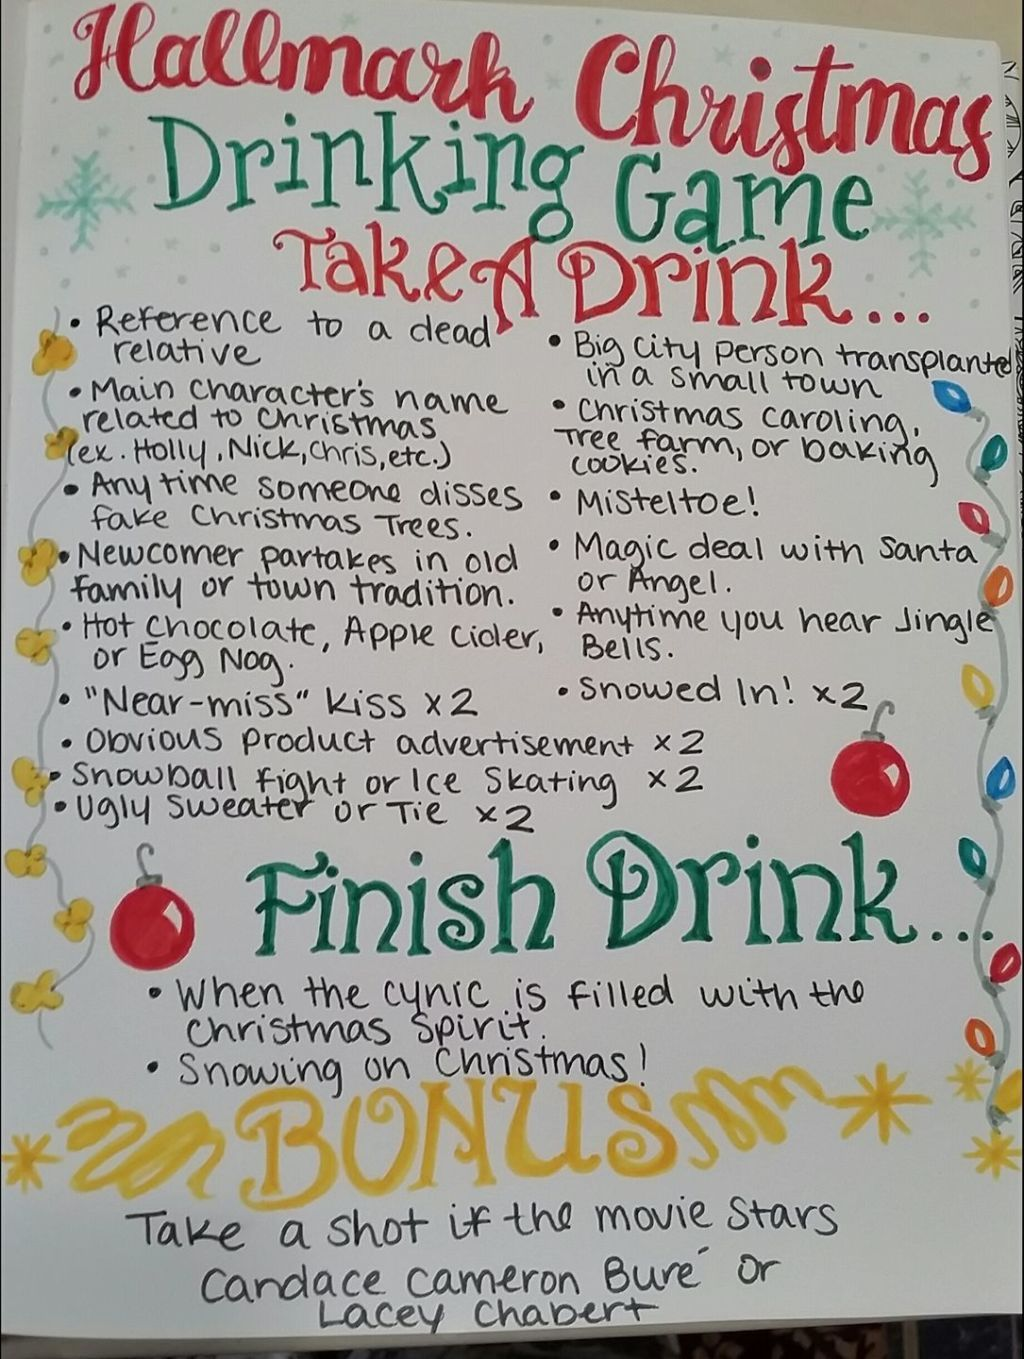 Christmas In July Hallmark Meme.This Hallmark Christmas Movie Drinking Game Officially Wins